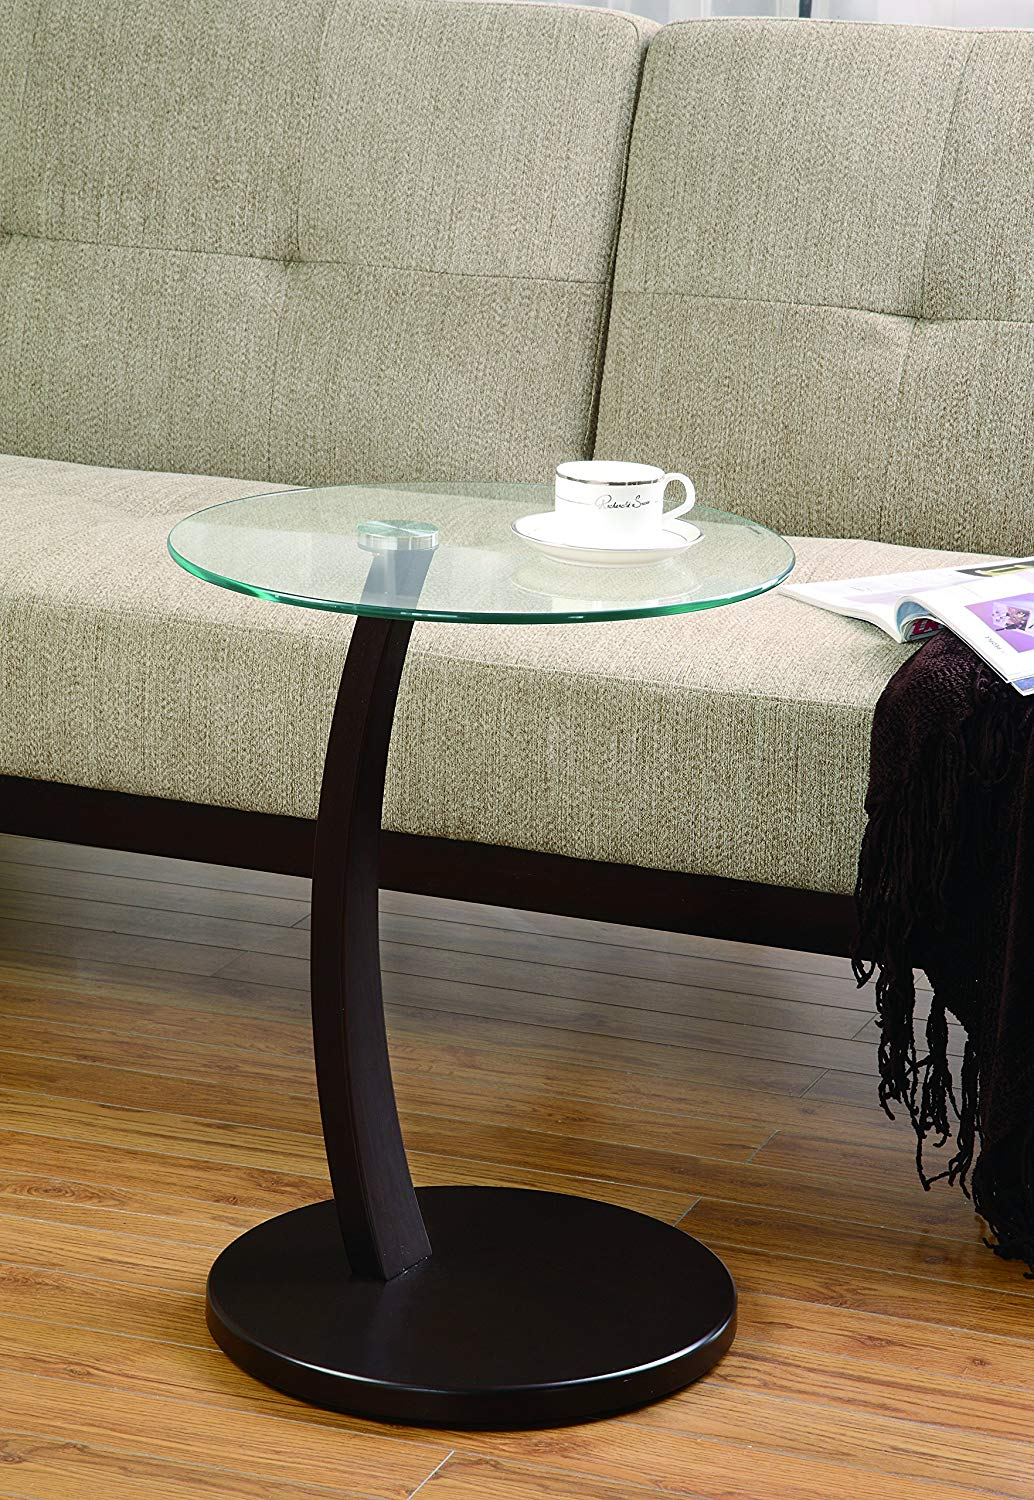 coaster home furnishings accent table with round glass top cappuccino and clear kitchen dining black occasional diy counter height country tablecloths end tables purple lamp shade